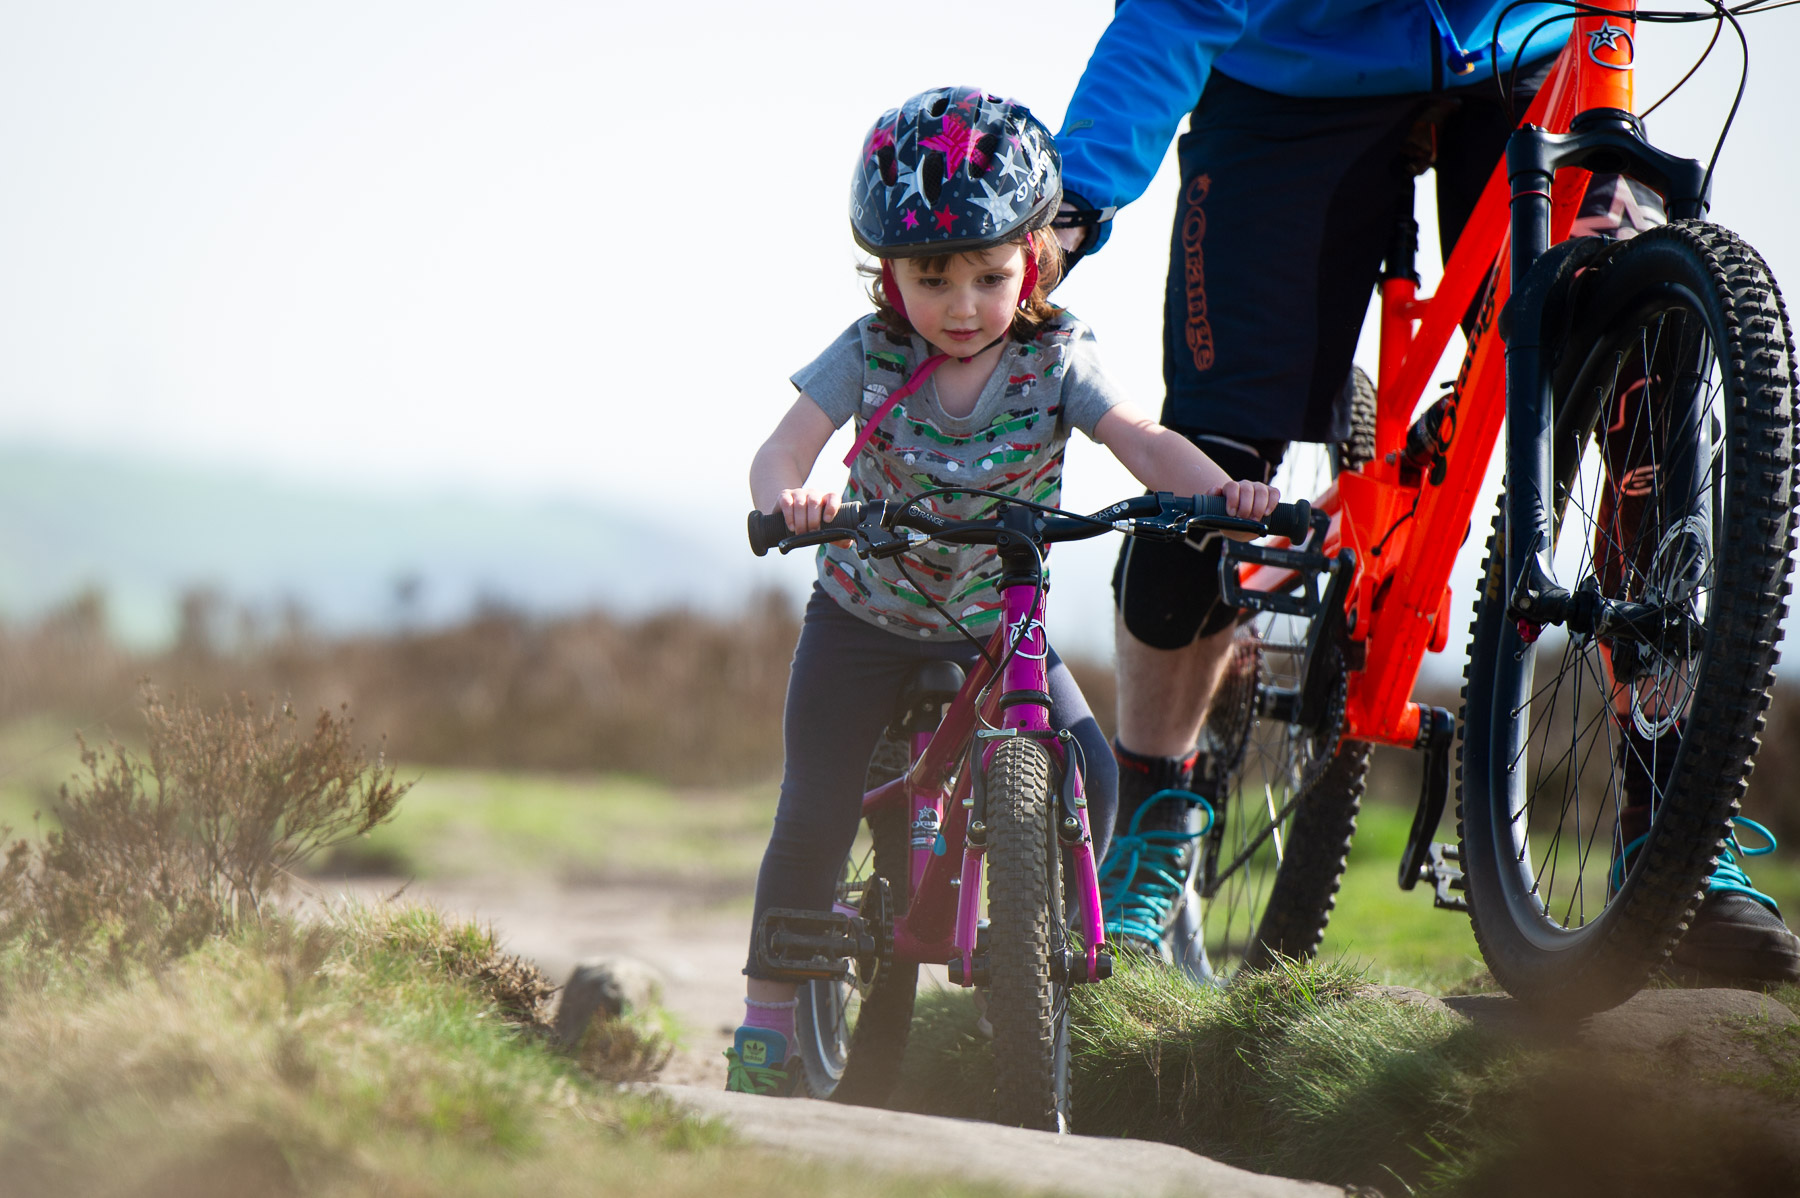 b3529e334b2 Then, as they get the hang of it, you can loosen your grip gradually and be  ready to catch or let go as is needed. The Orange Guide To Kids Bikes